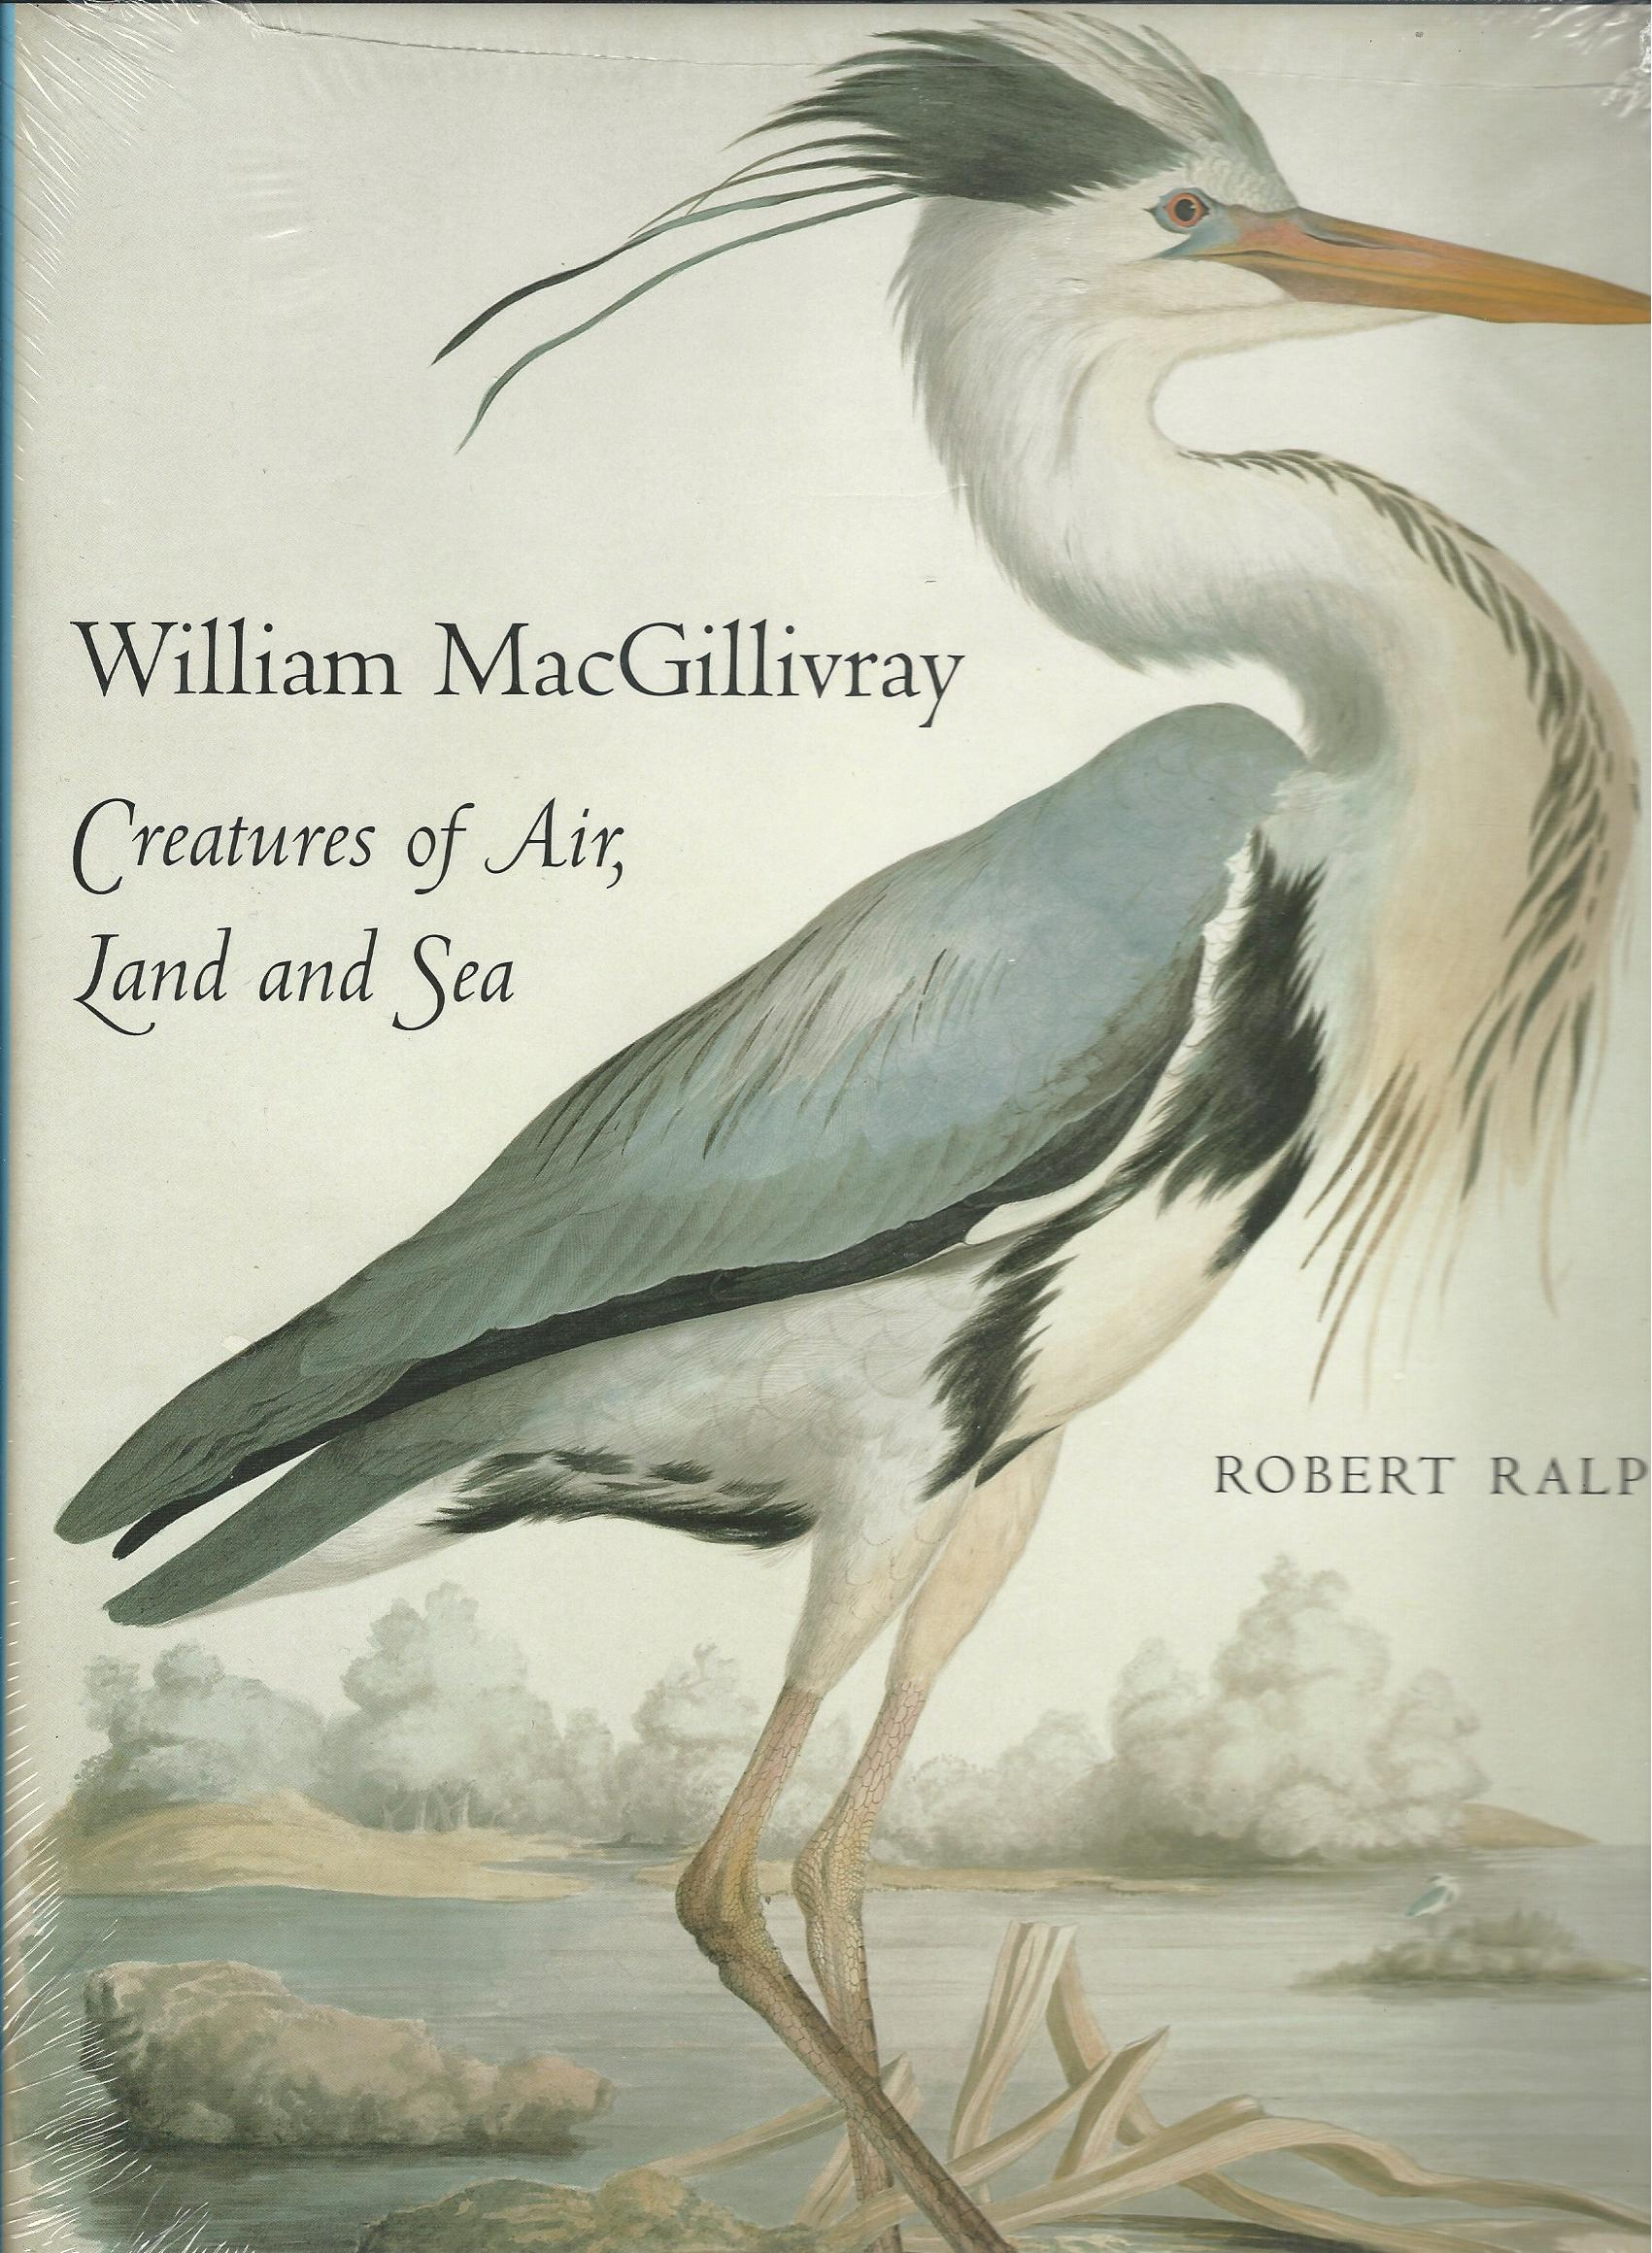 Image for William MacGillivray, Creatures of Air, Land and Sea.